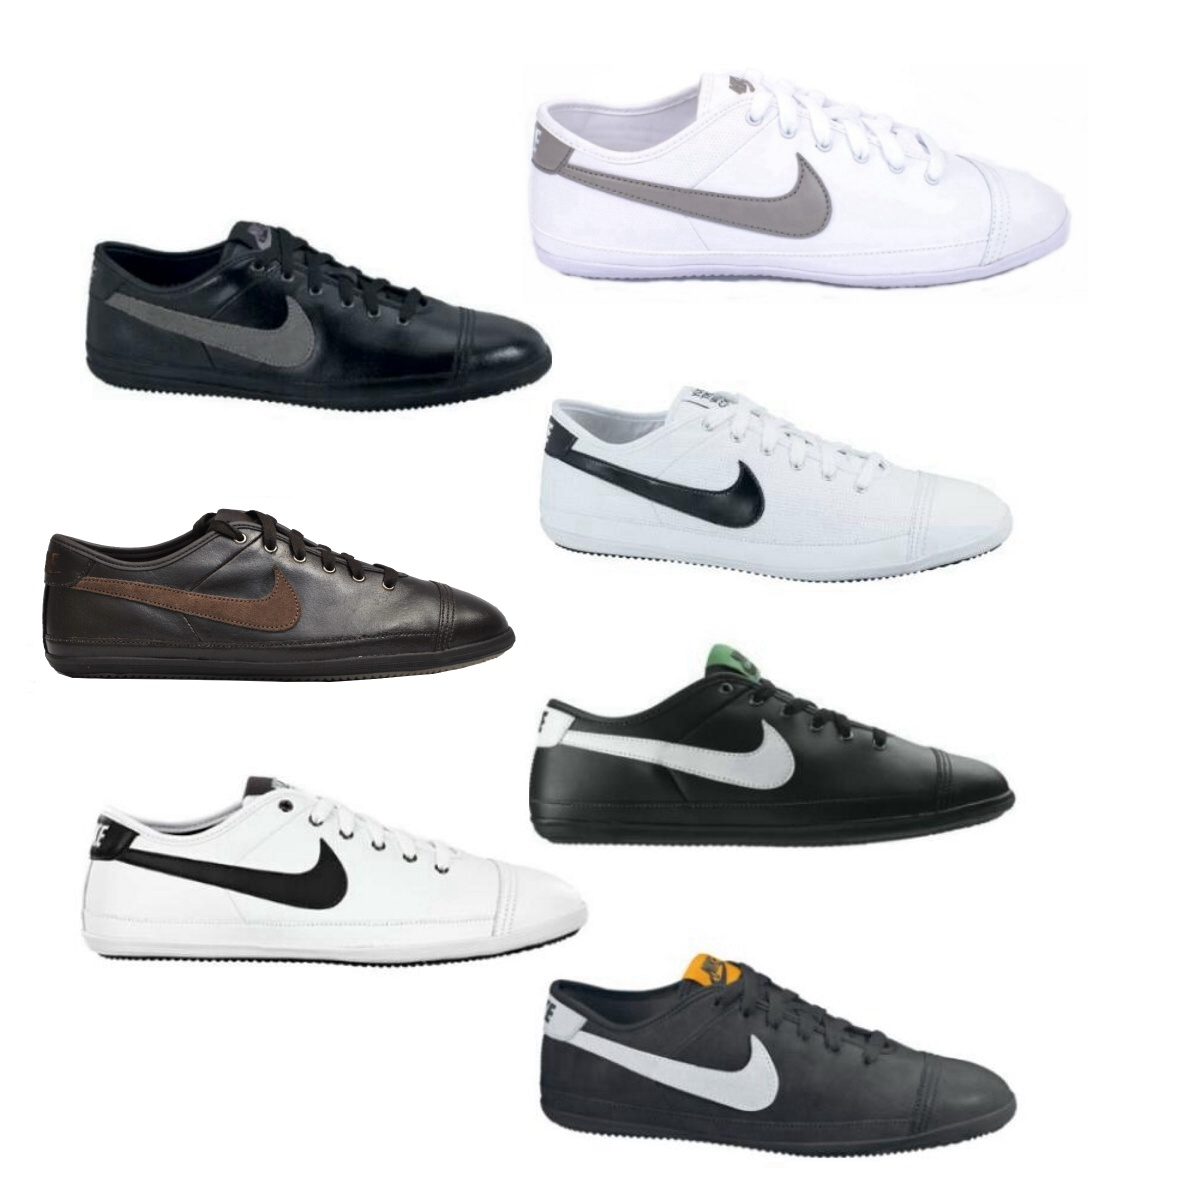 nike flash leather sneaker schuhe herren diverse farben ebay. Black Bedroom Furniture Sets. Home Design Ideas